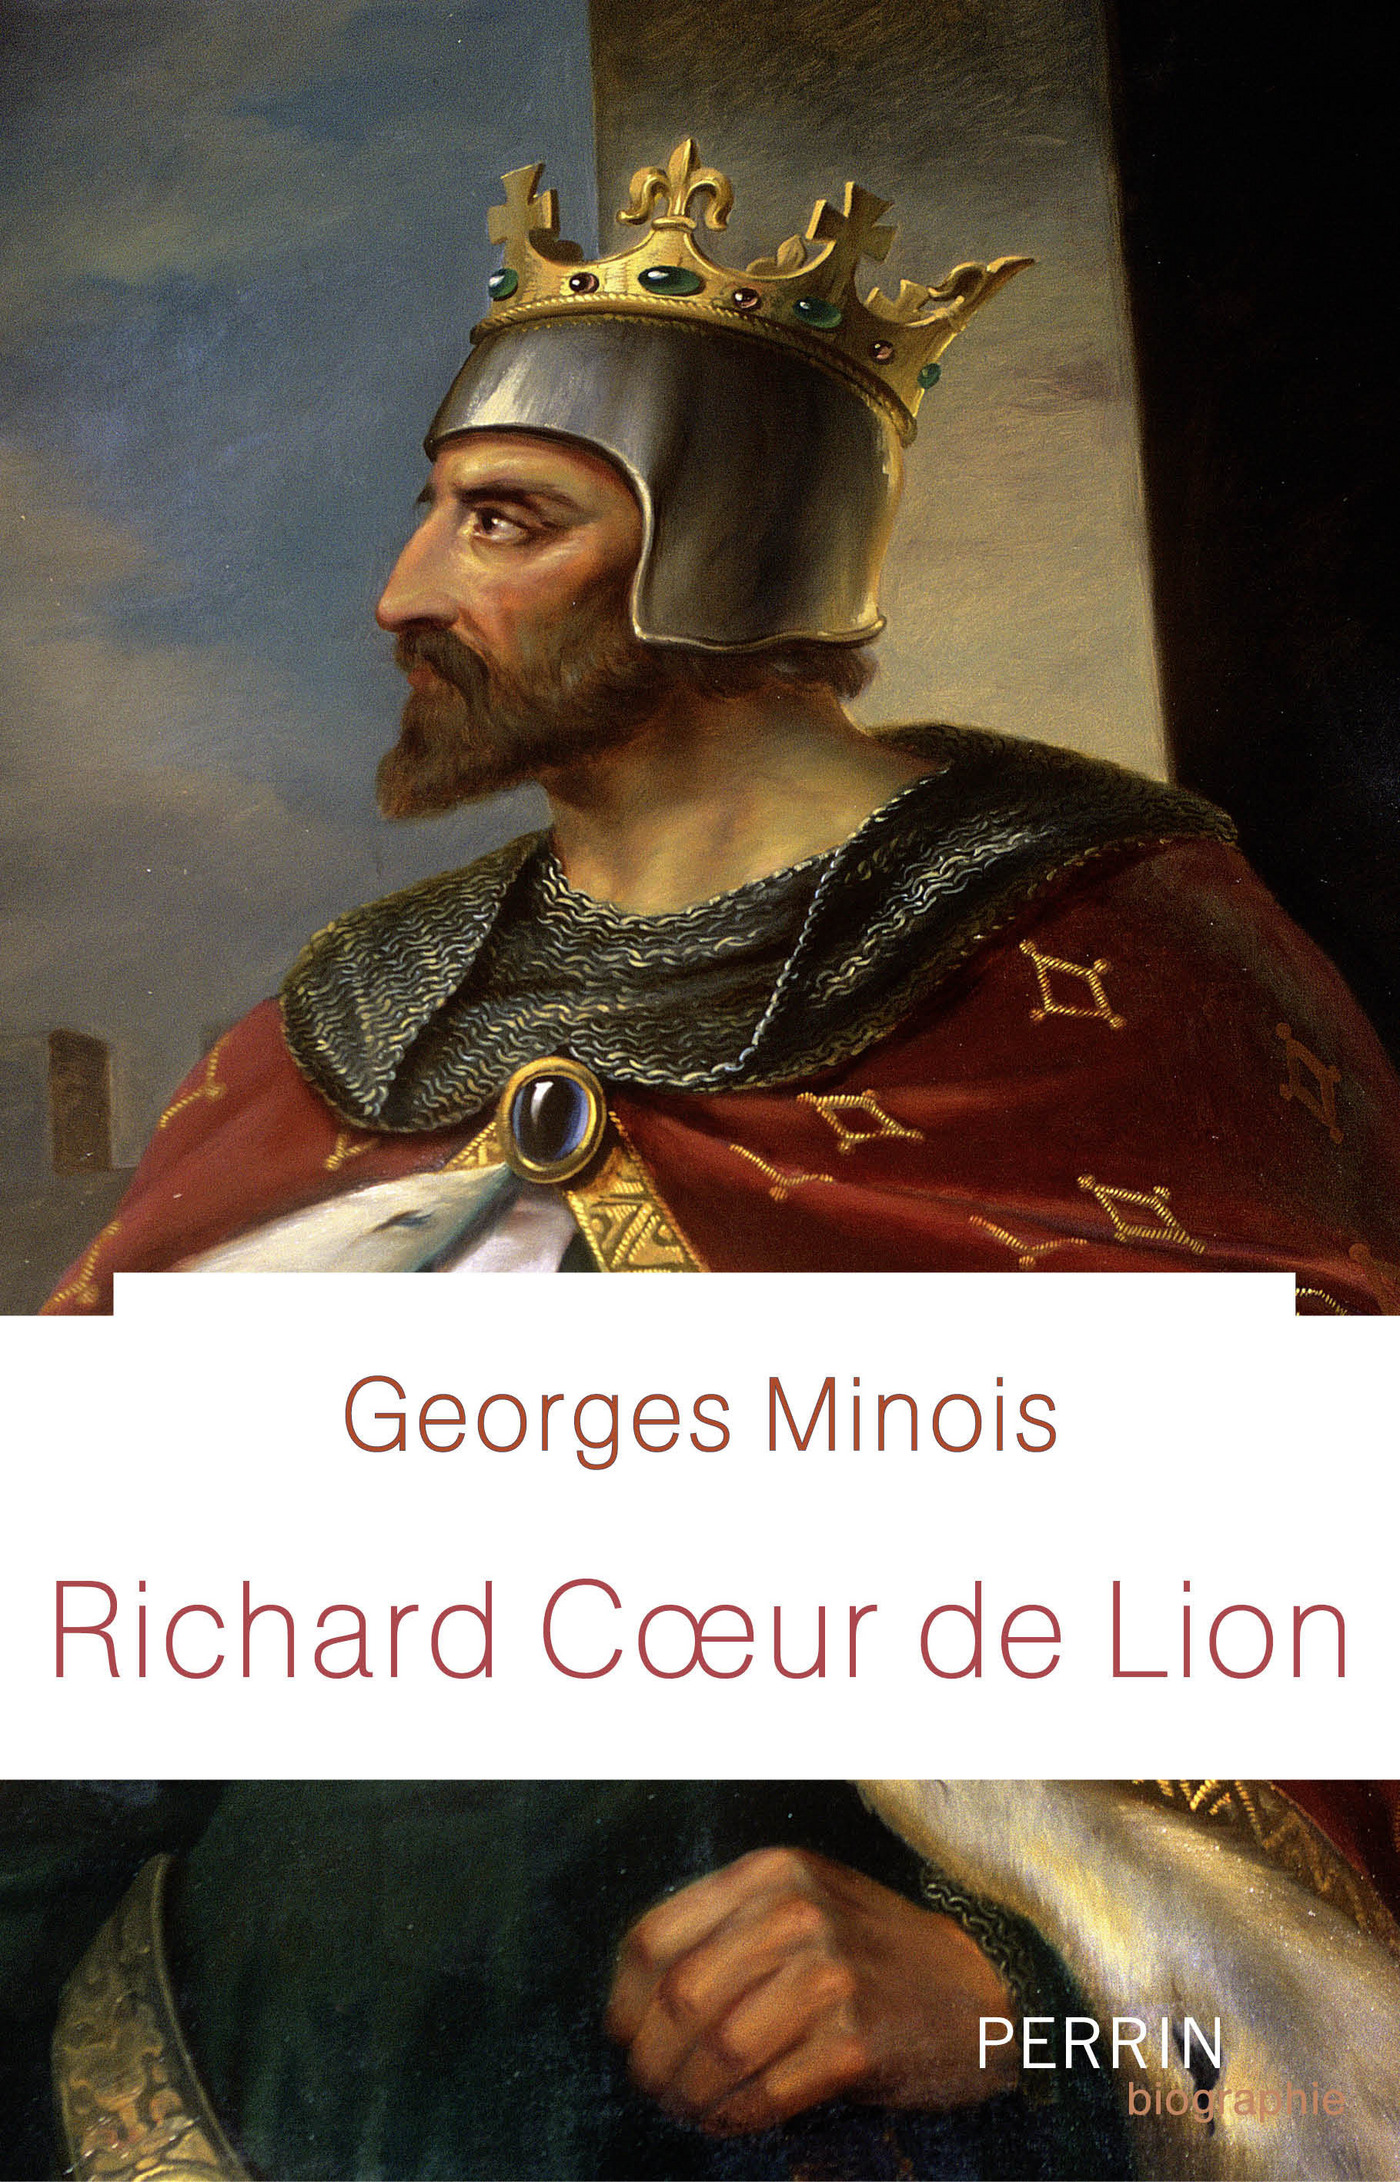 Richard Coeur de Lion